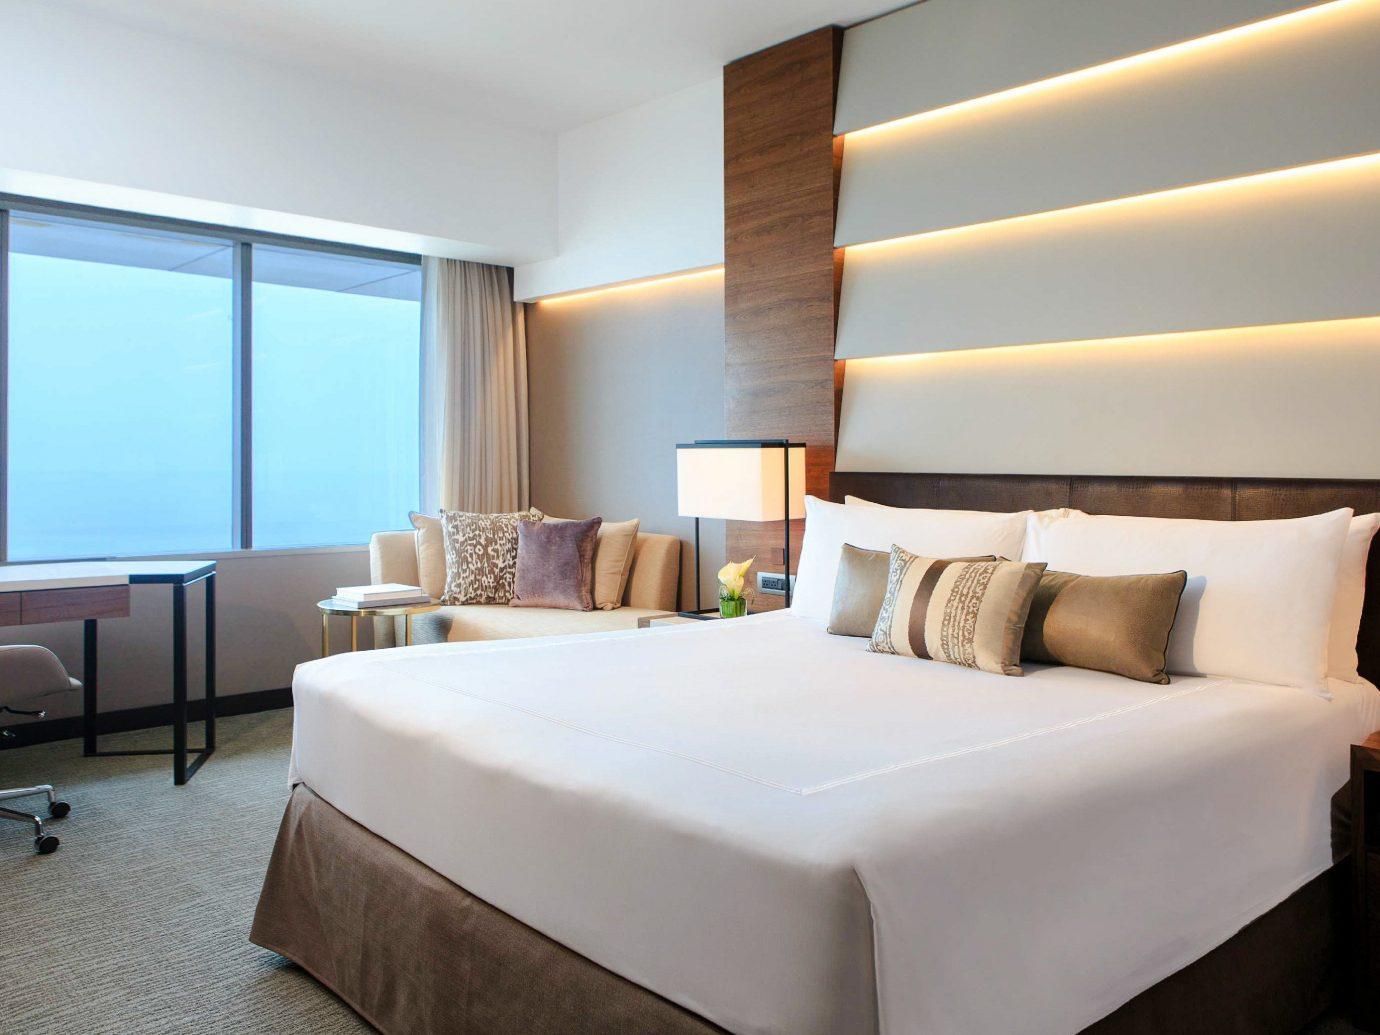 Boutique Hotels Hotels indoor bed floor wall hotel room ceiling Suite window interior design Bedroom bed frame real estate bed sheet window covering decorated furniture several